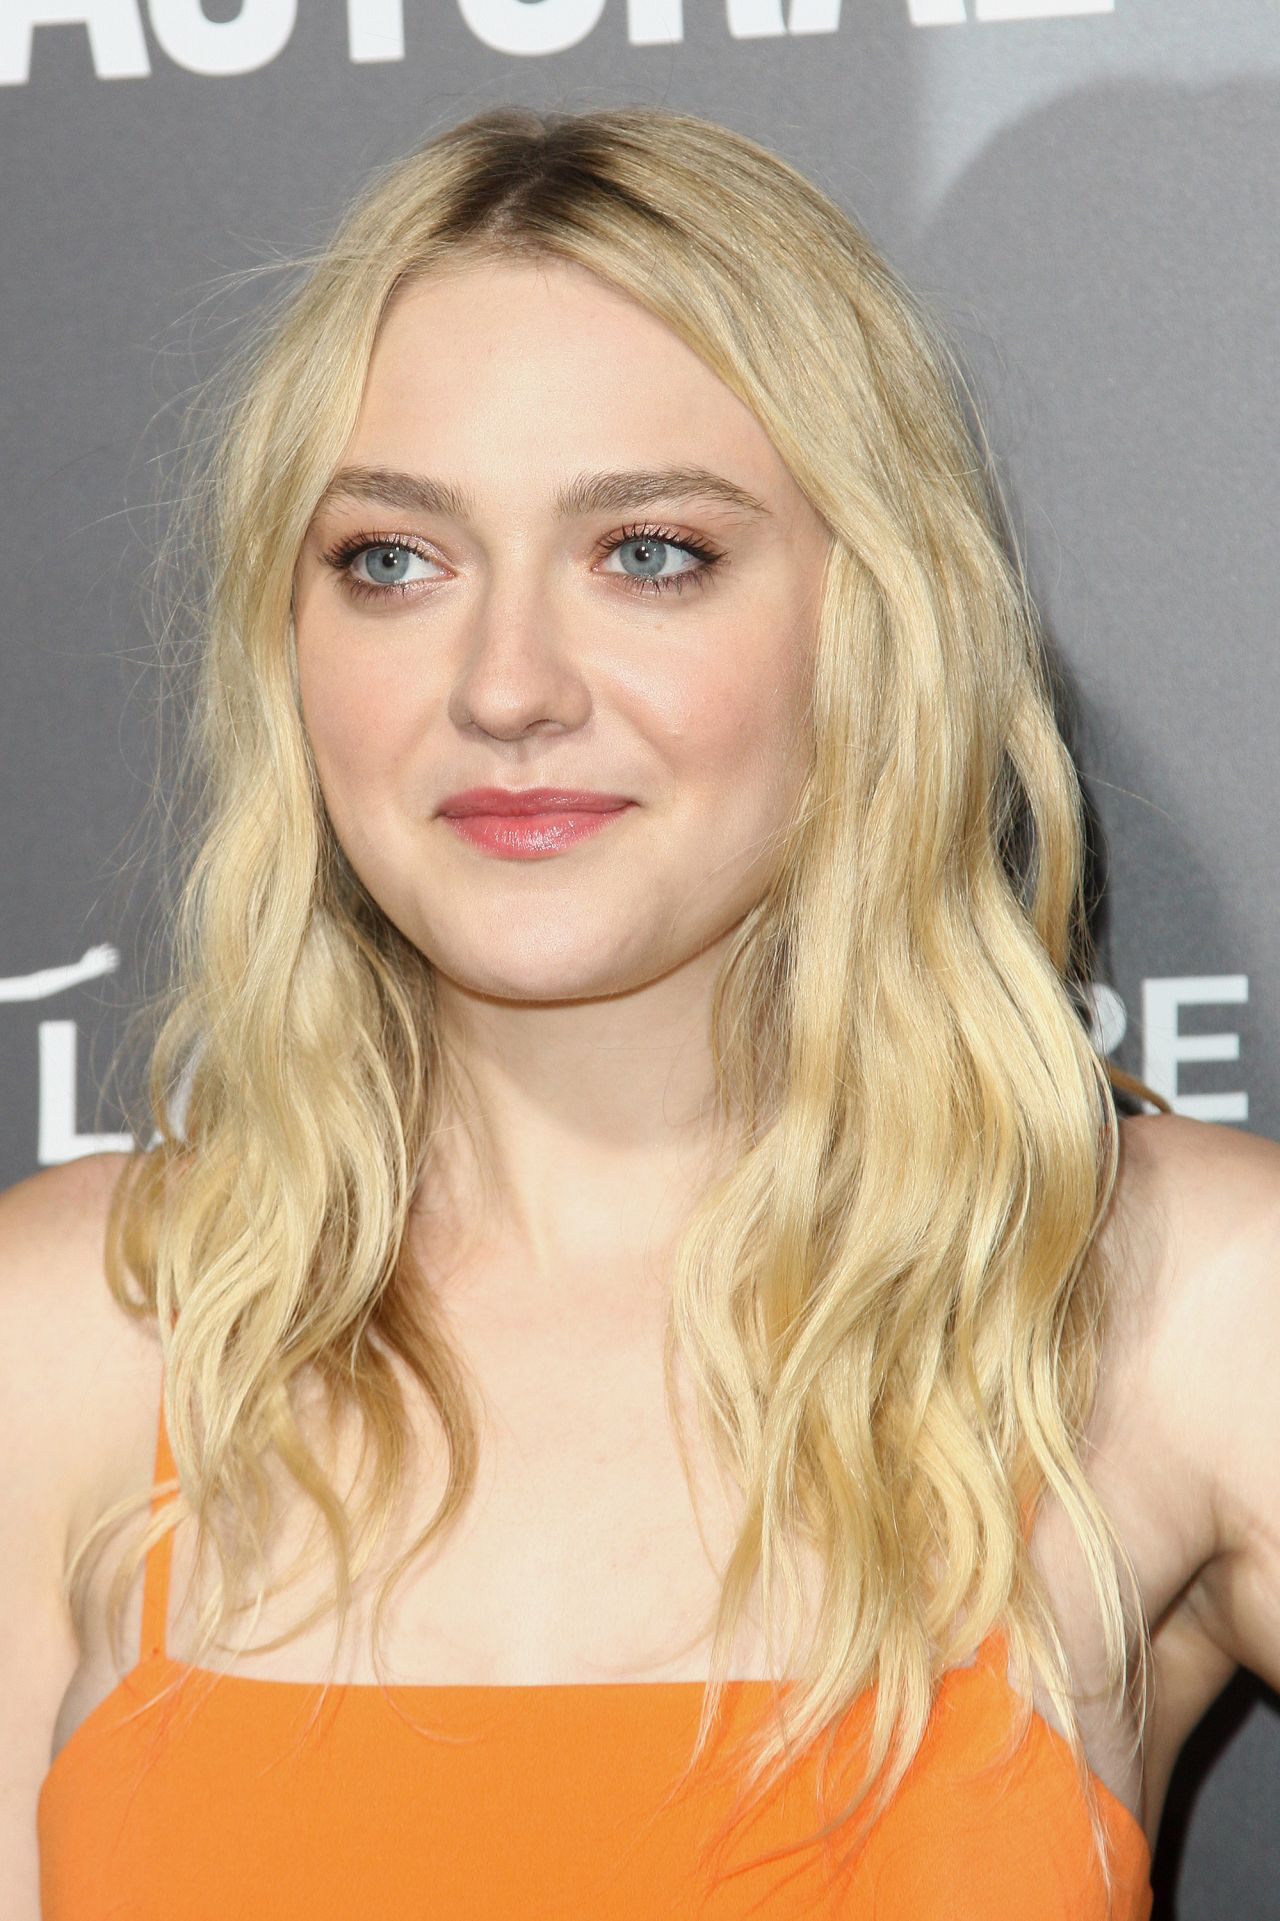 Dakota Fanning - 'American Pastoral' Premiere in Los Angeles Dakota Fanning